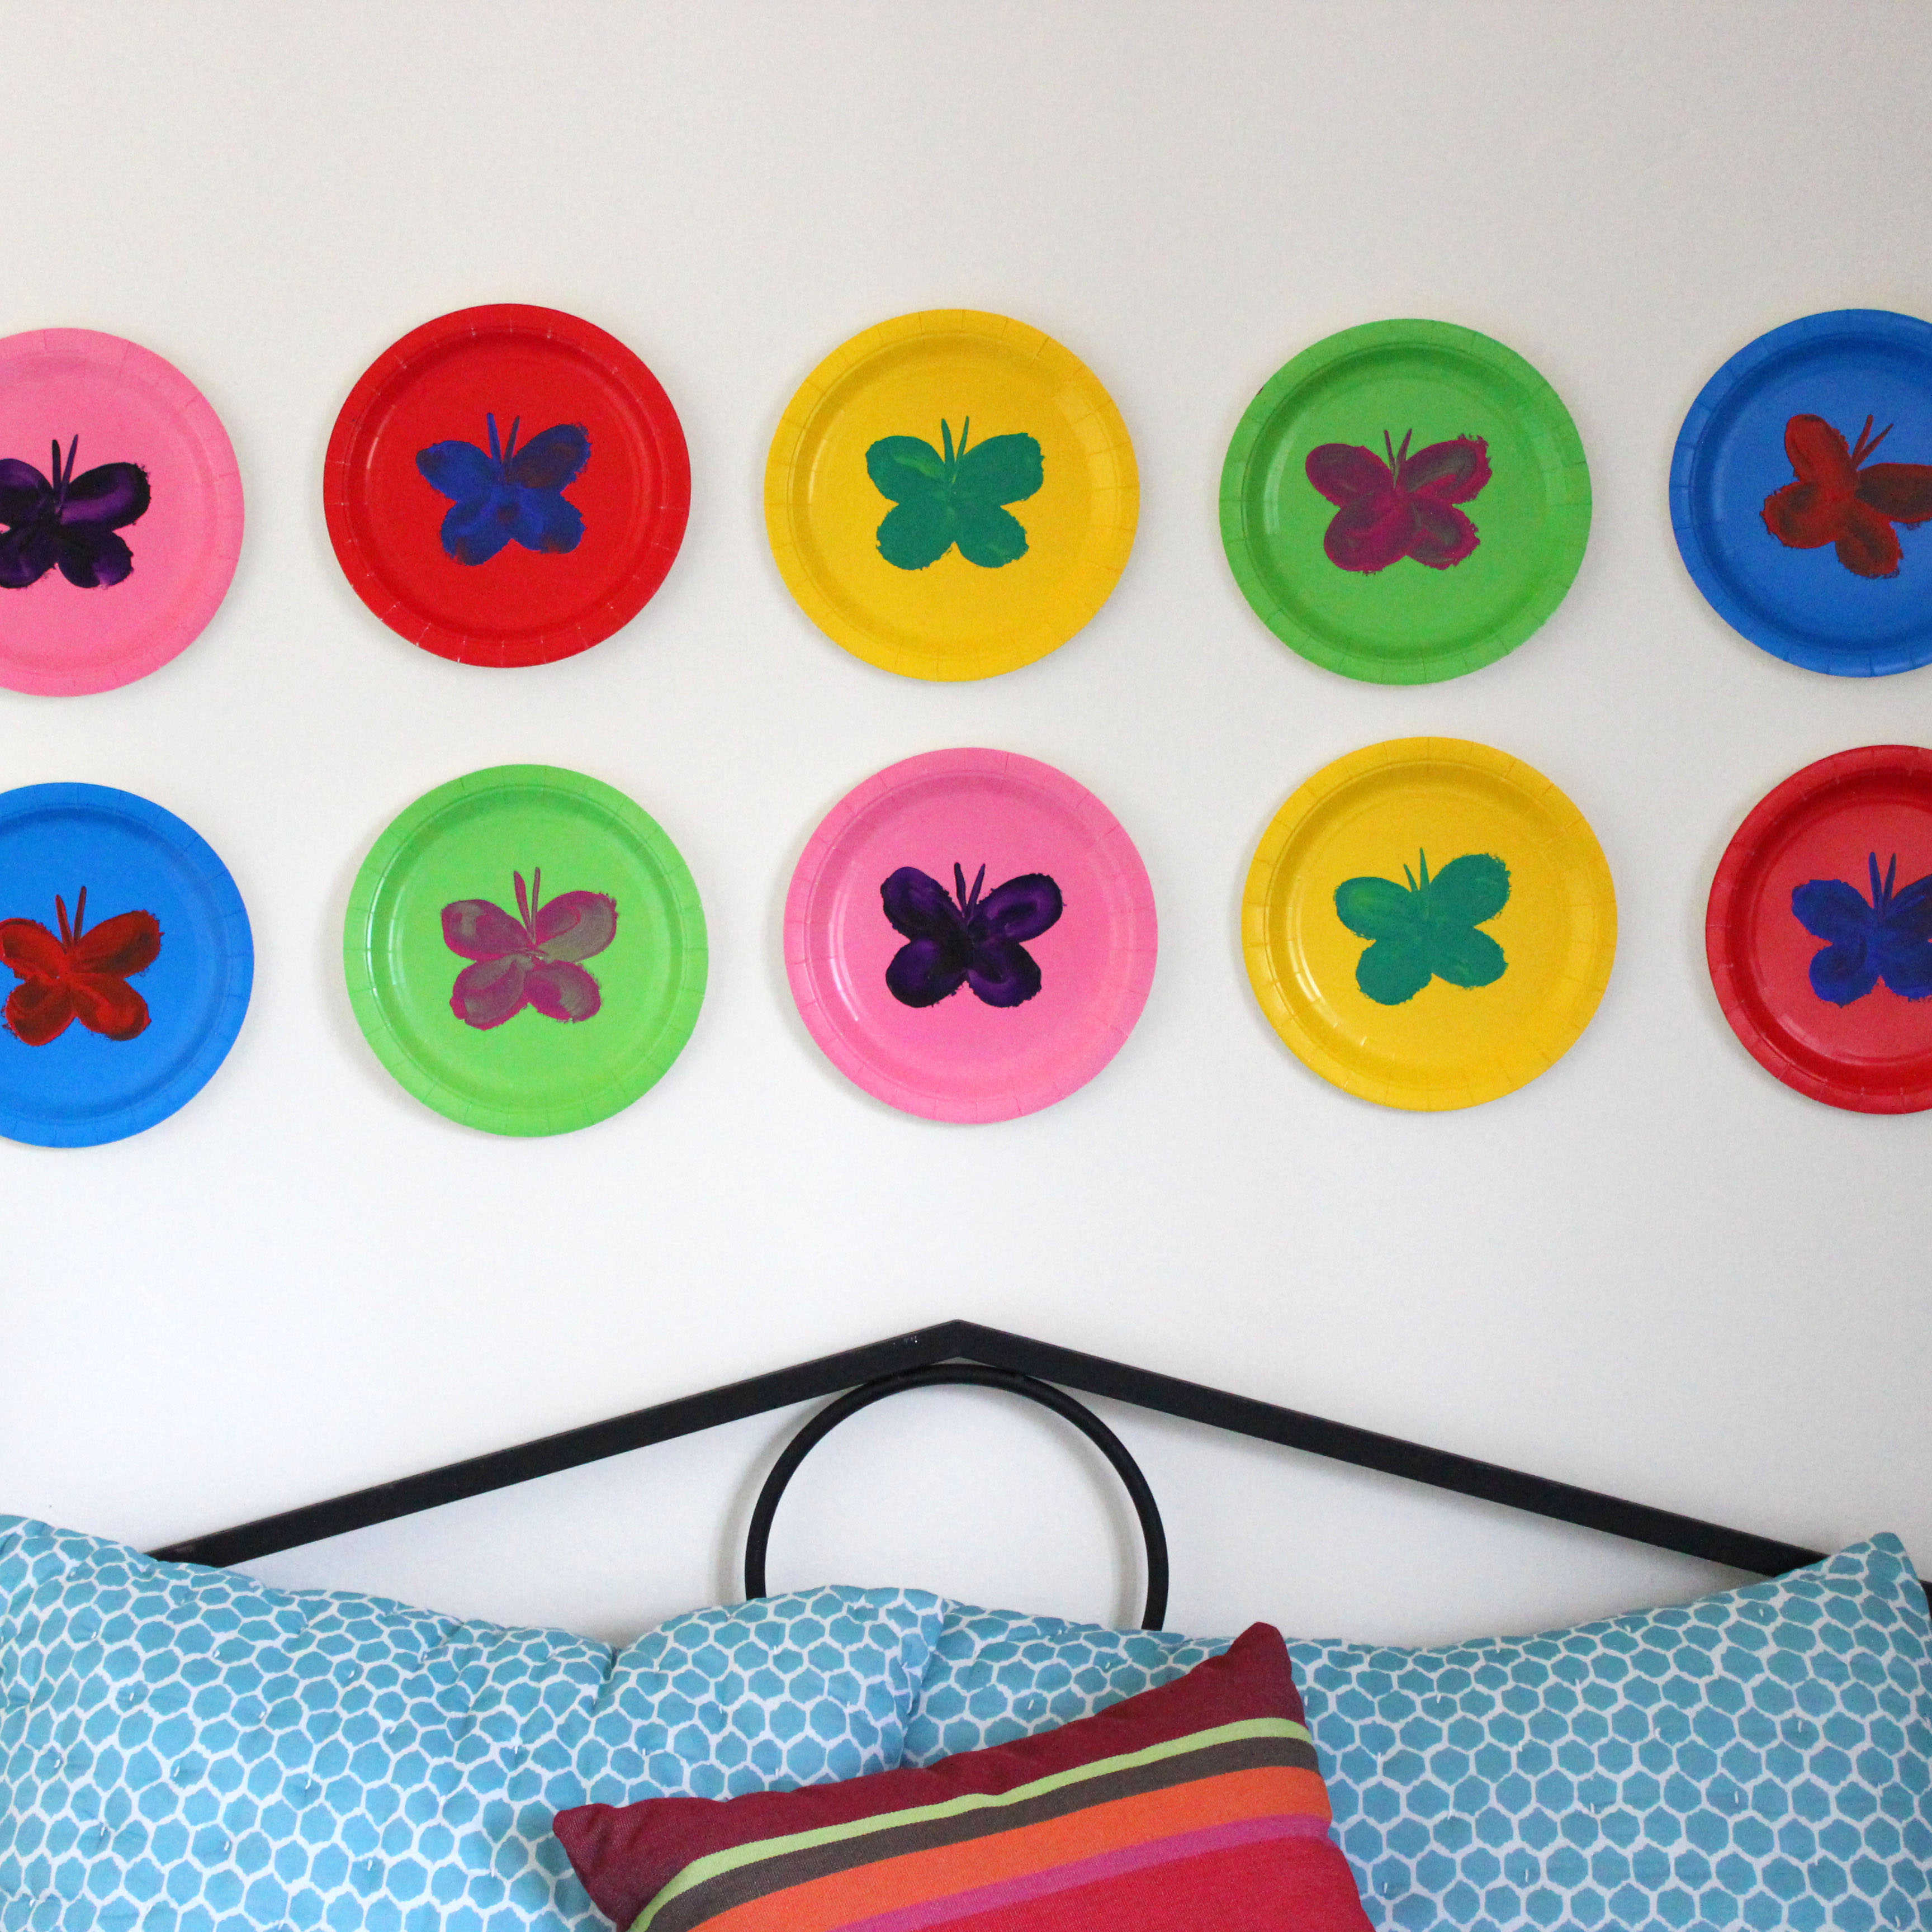 paper plate art  sc 1 st  Jonathan Fong Style & Kidsu0027 Room Decorating Ideas for Disney u2013 Jonathan Fong Style